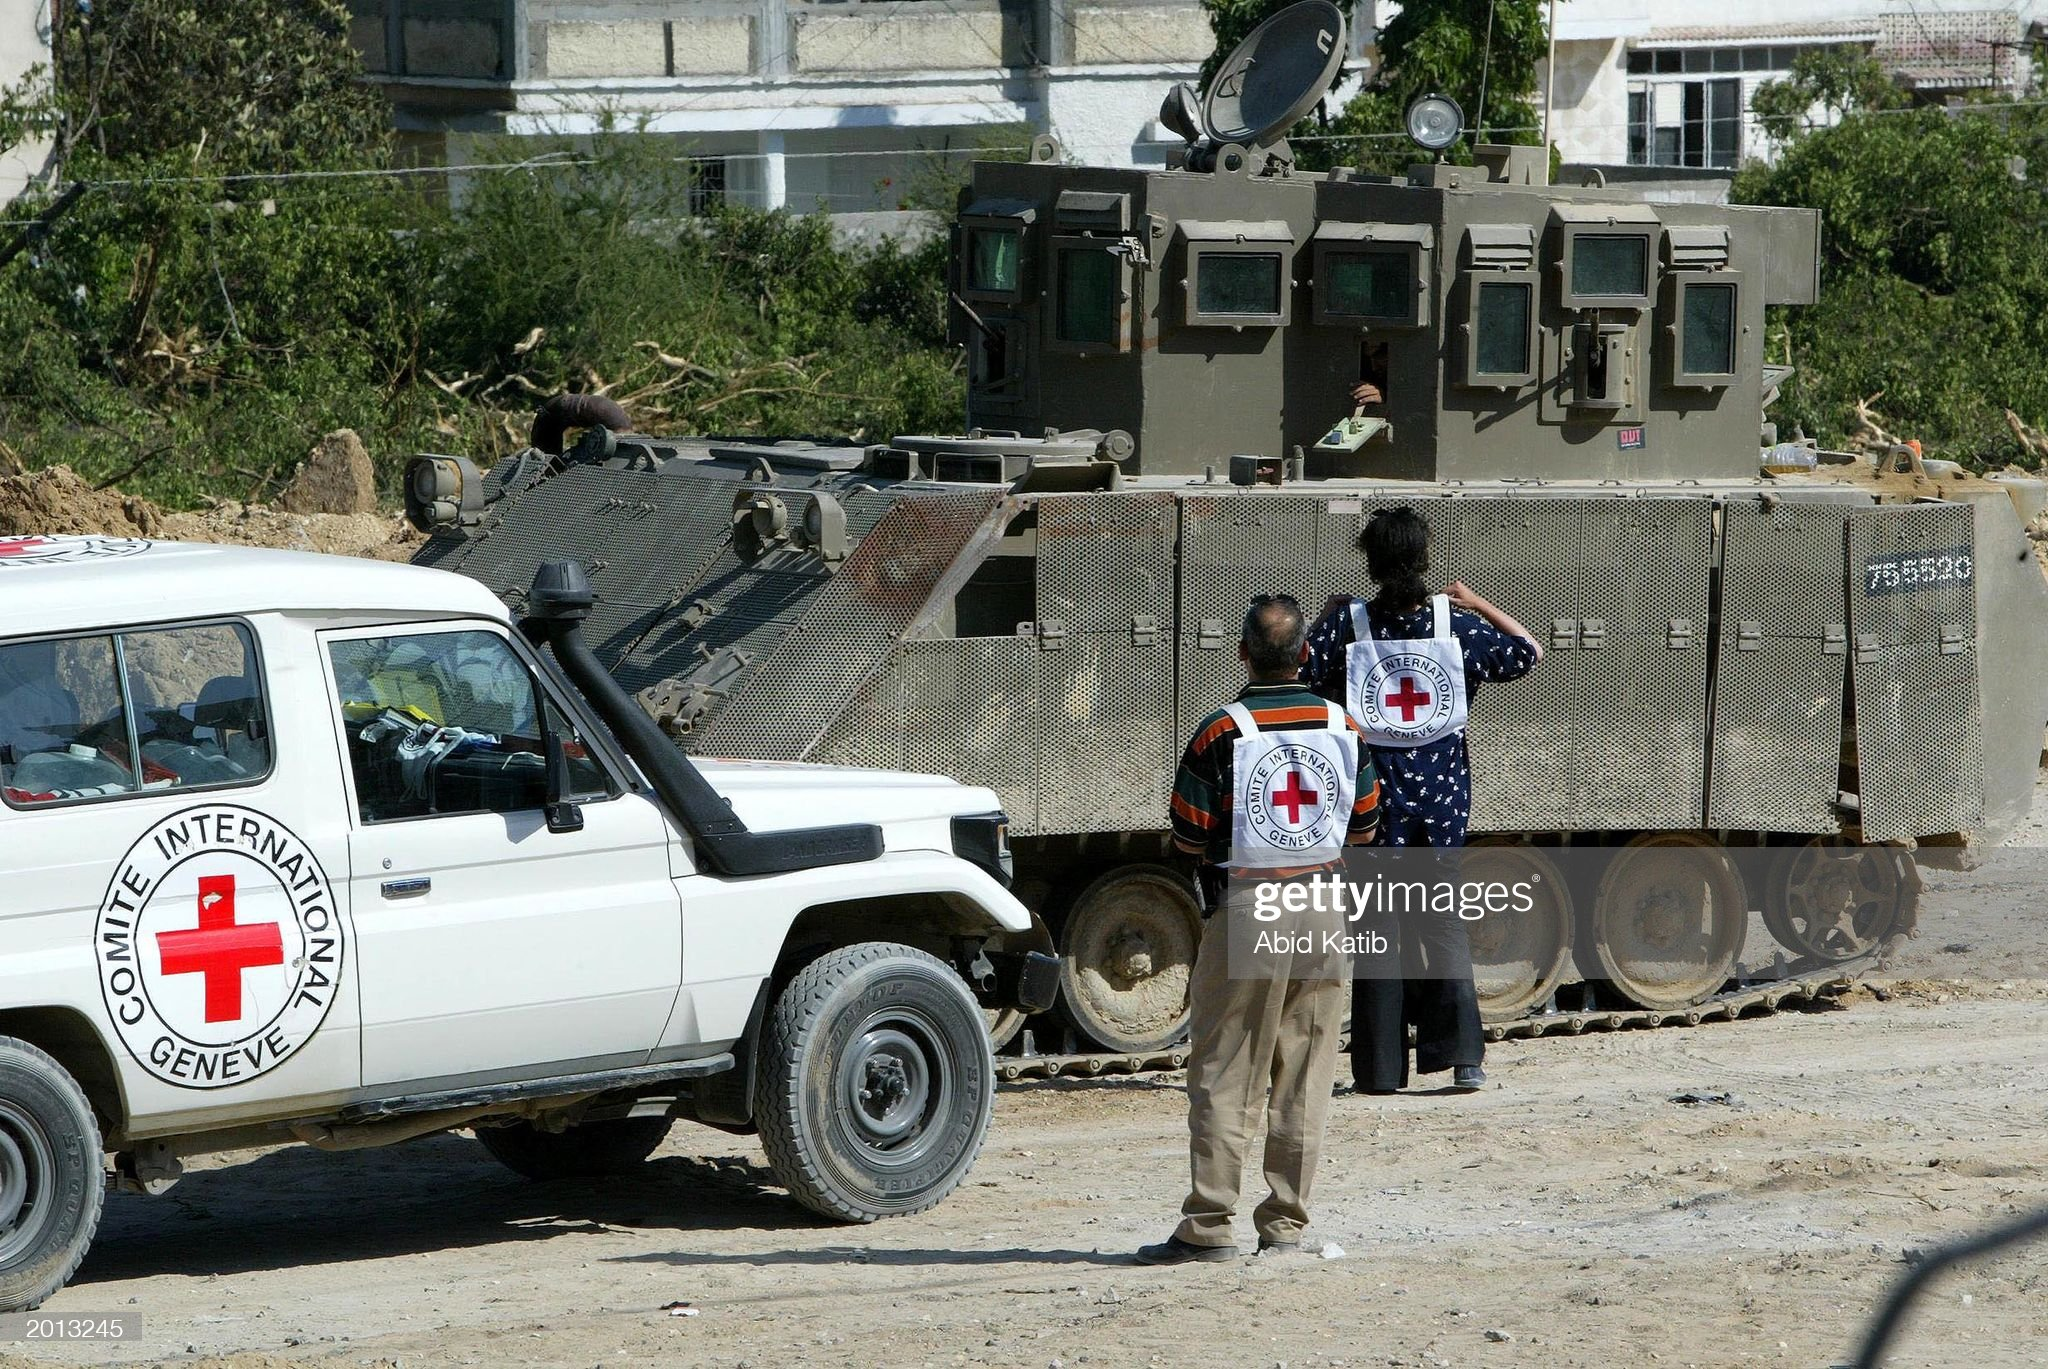 https://media.gettyimages.com/photos/red-cross-members-talk-with-an-israeli-soldier-inside-a-tank-as-they-picture-id2013245?s=2048x2048